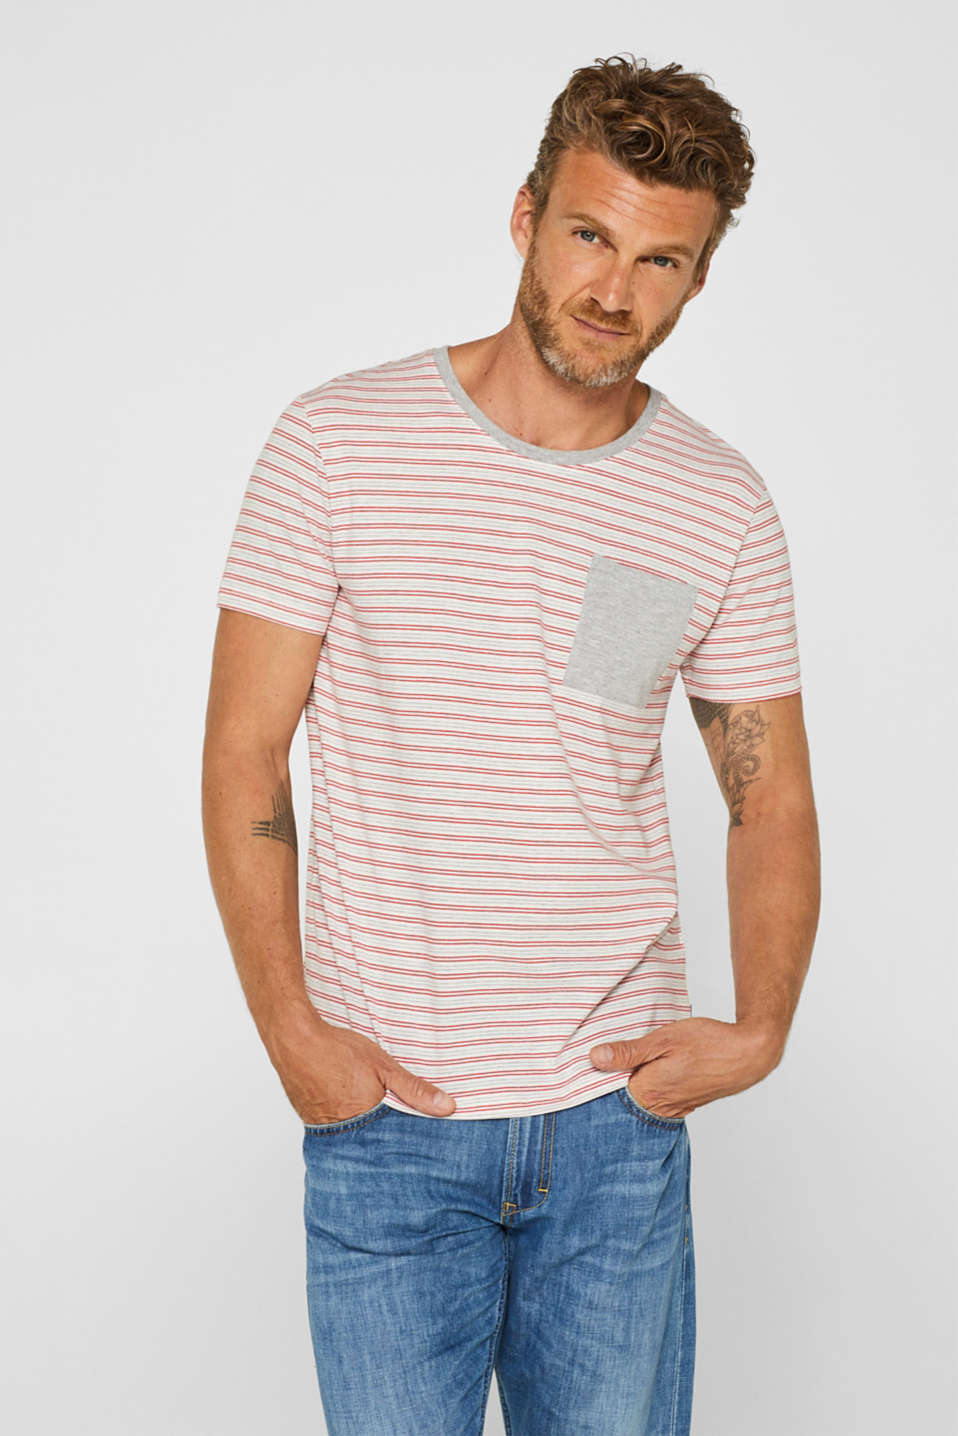 edc - Jersey T-shirt with stripes, 100% cotton